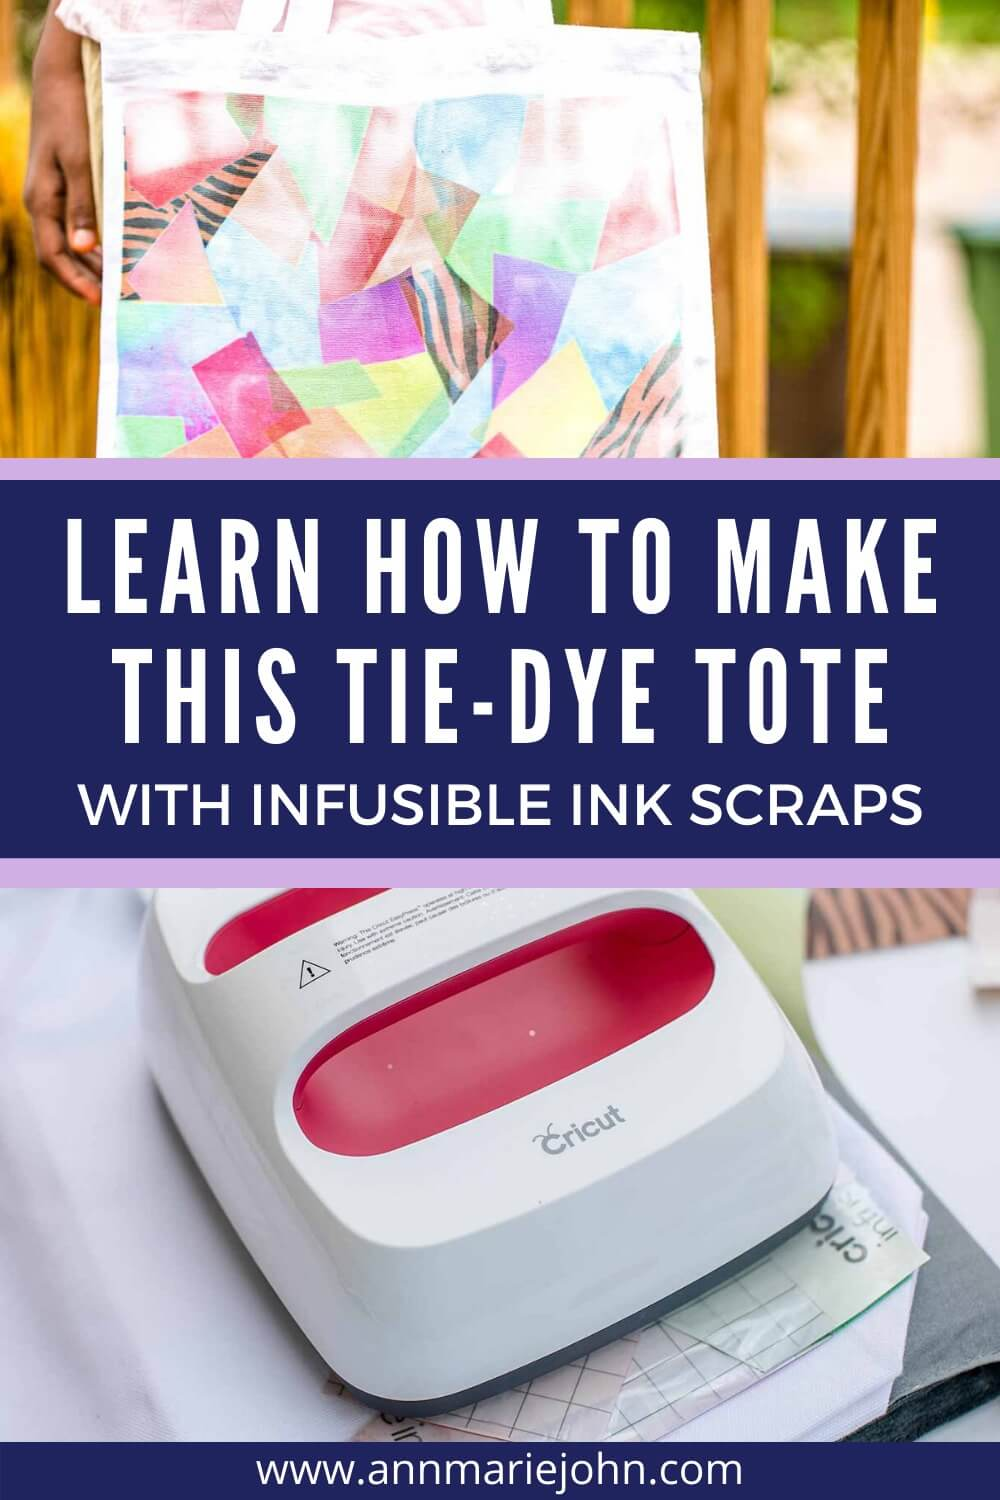 Learn how to make this tie-dye tote with infusible ink scraps